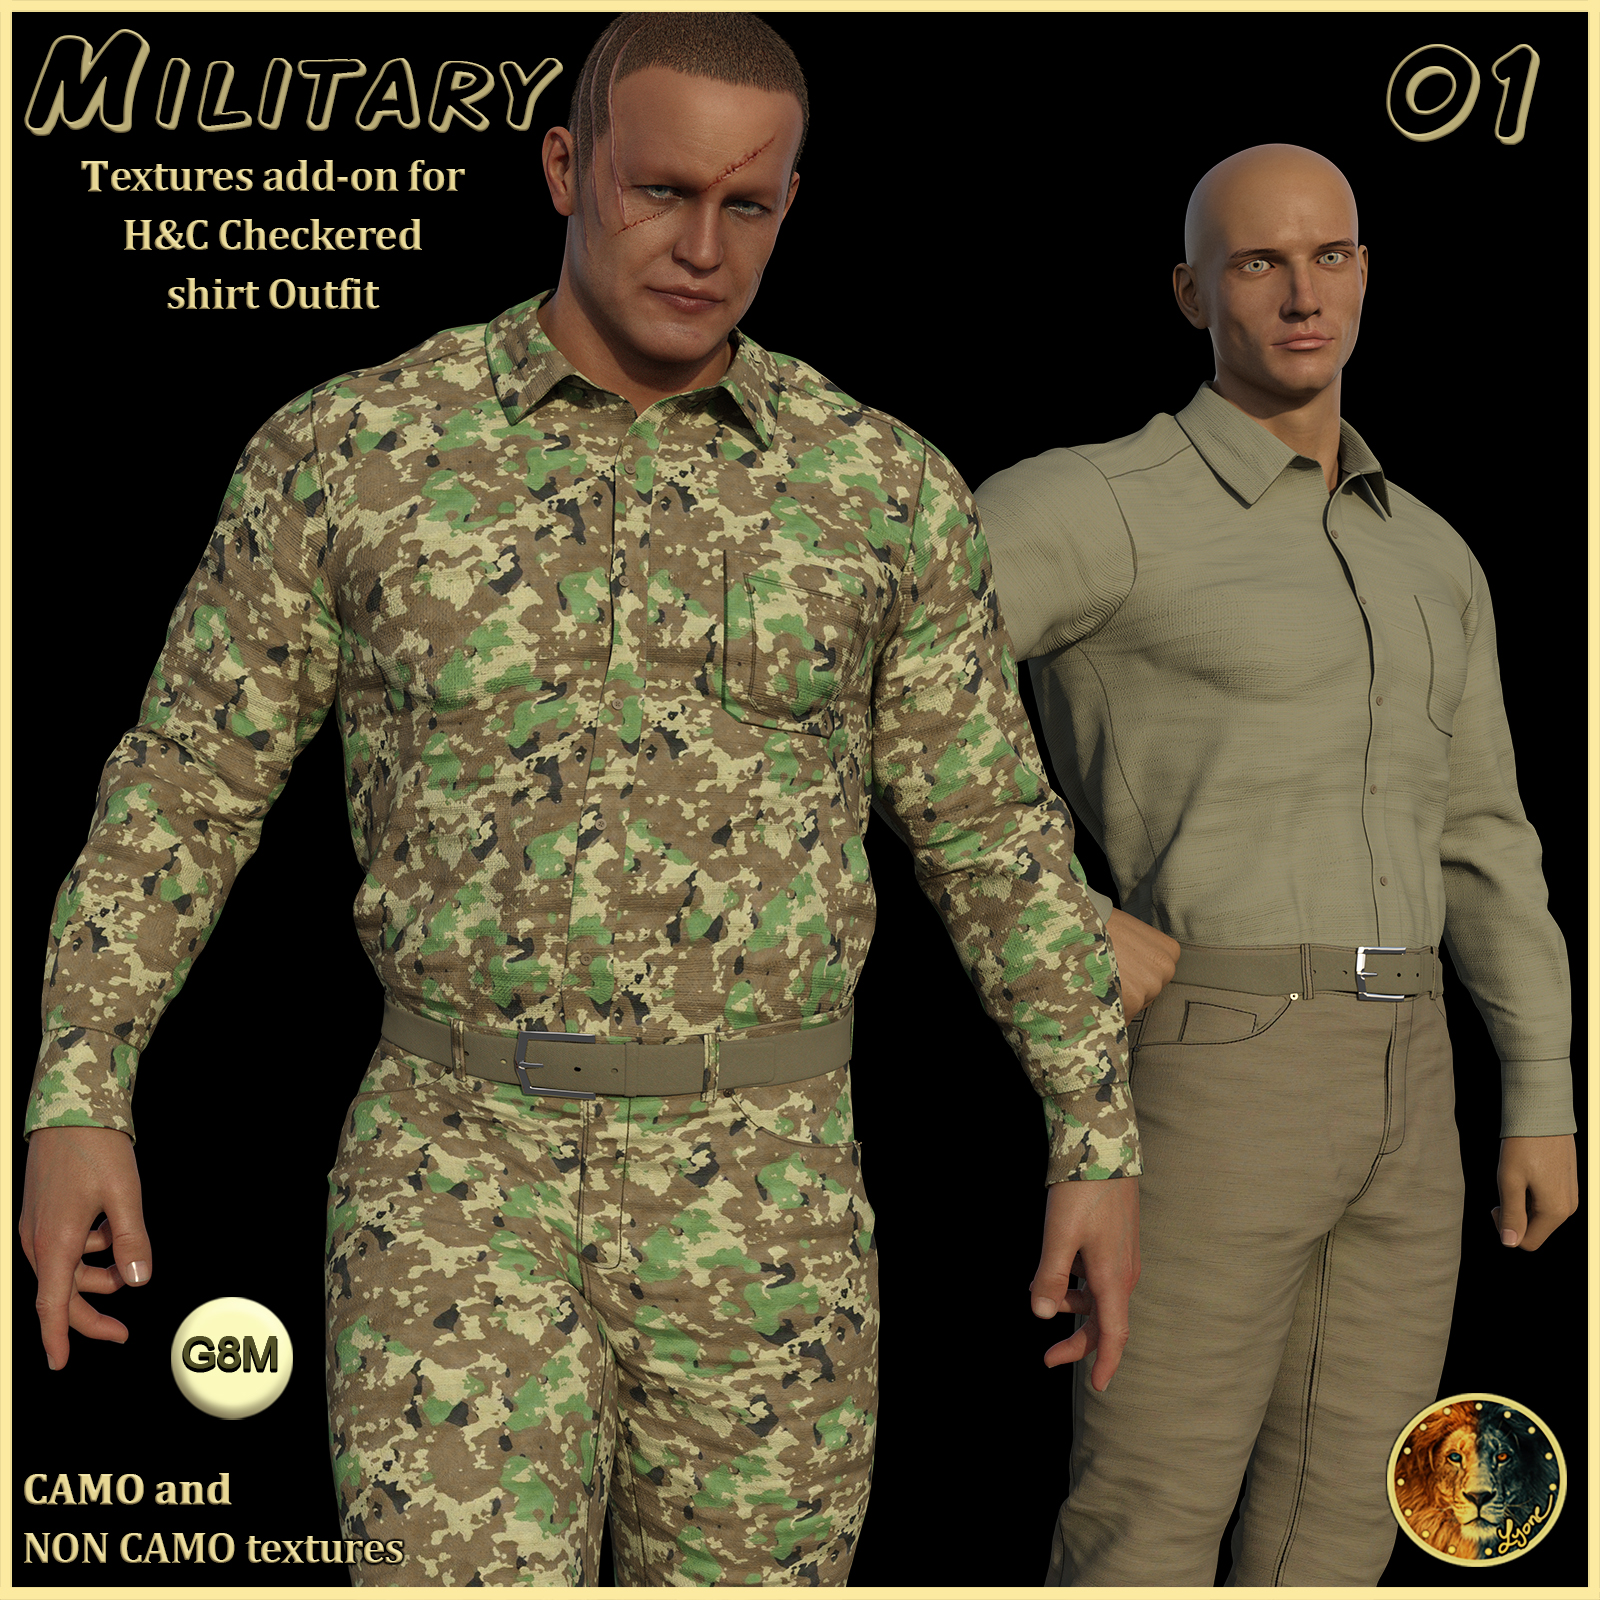 Military 01 for H&C Checkered Shirt Outfit for G8M